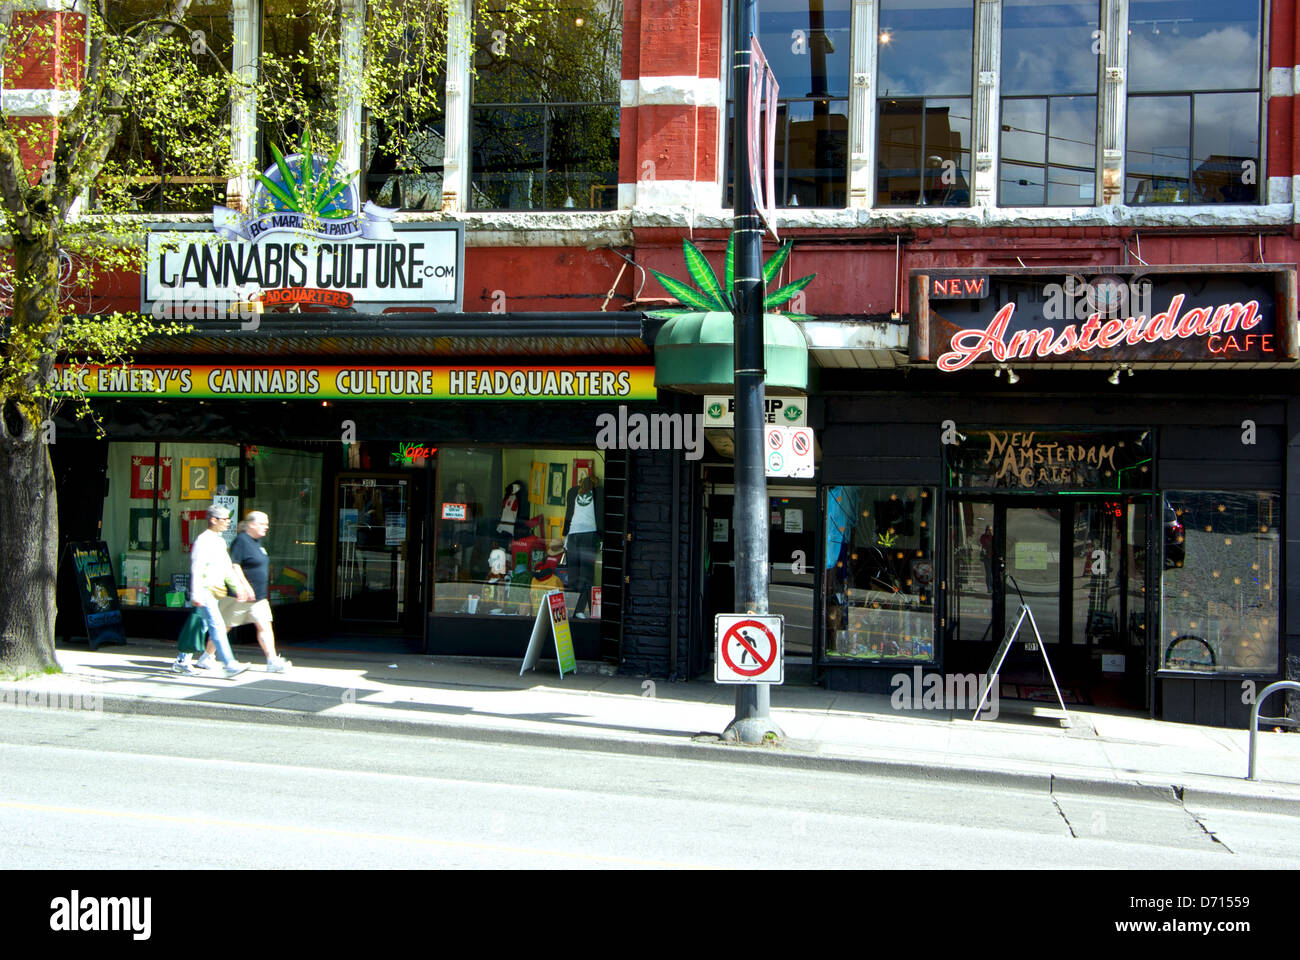 Marc Emery Cannabis Culture New Amsterdam Cafe BC Marijuana Party Hastings Street downtown Vancouver pot shops - Stock Image